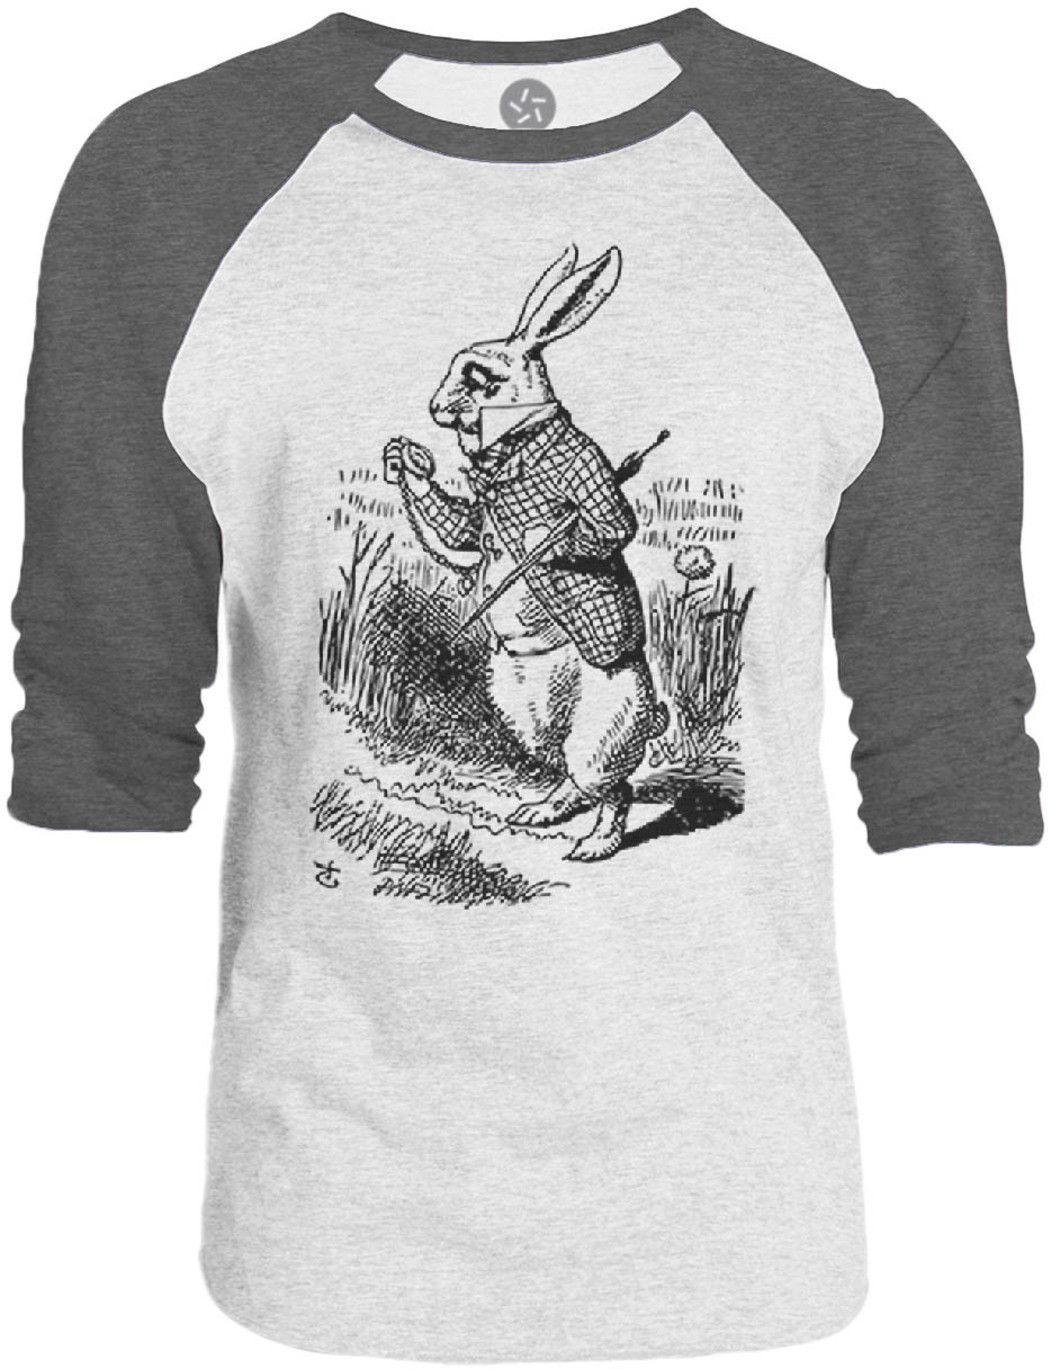 Big Texas Alice in Wonderland - The White Rabbit (Black) 3/4-Sleeve Raglan Baseball T-Shirt